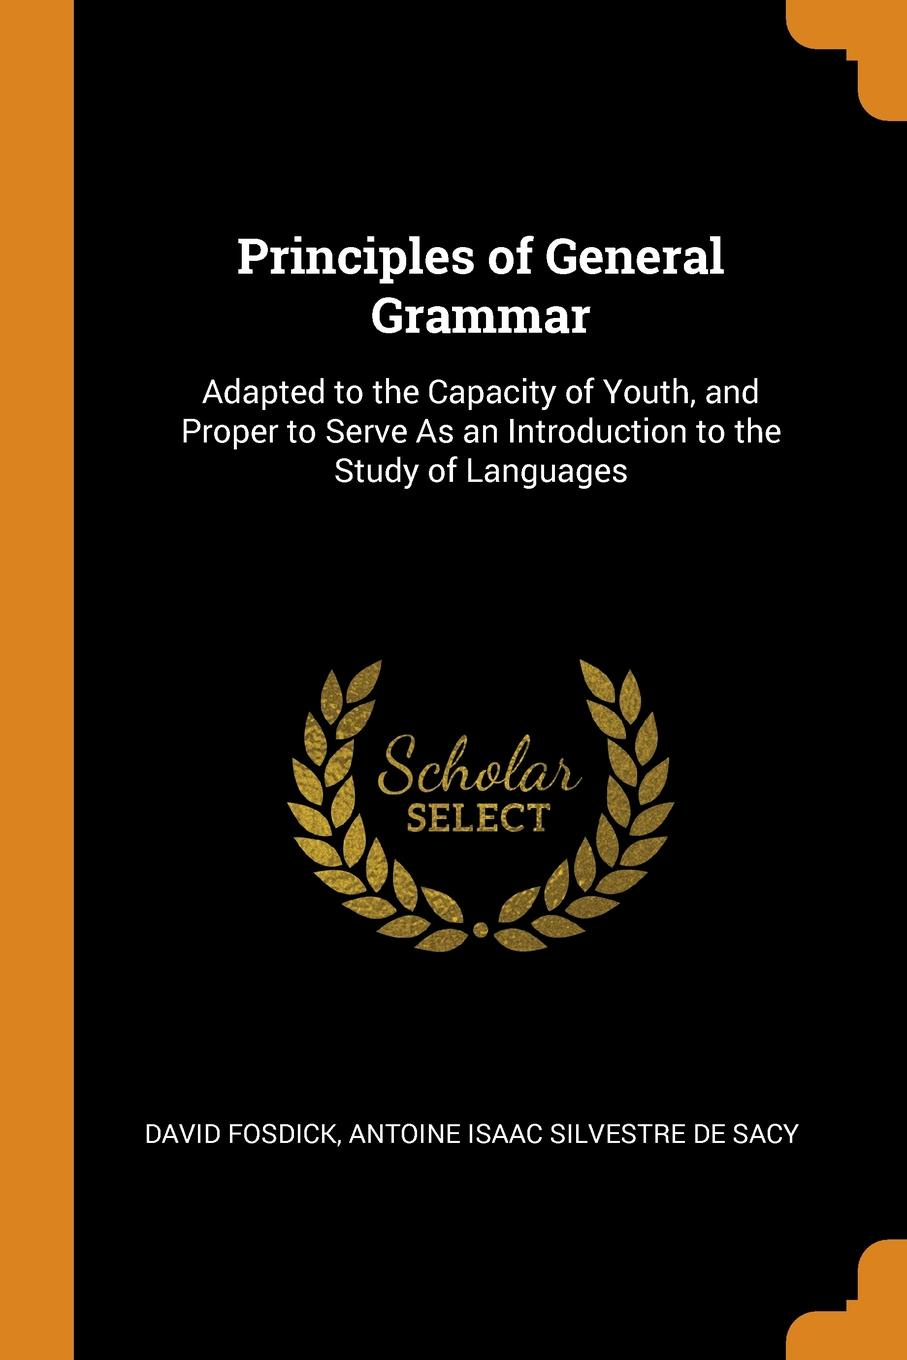 Principles of General Grammar. Adapted to the Capacity of Youth, and Proper to Serve As an Introduction to the Study of Languages. David Fosdick, Antoine Isaac Silvestre De Sacy